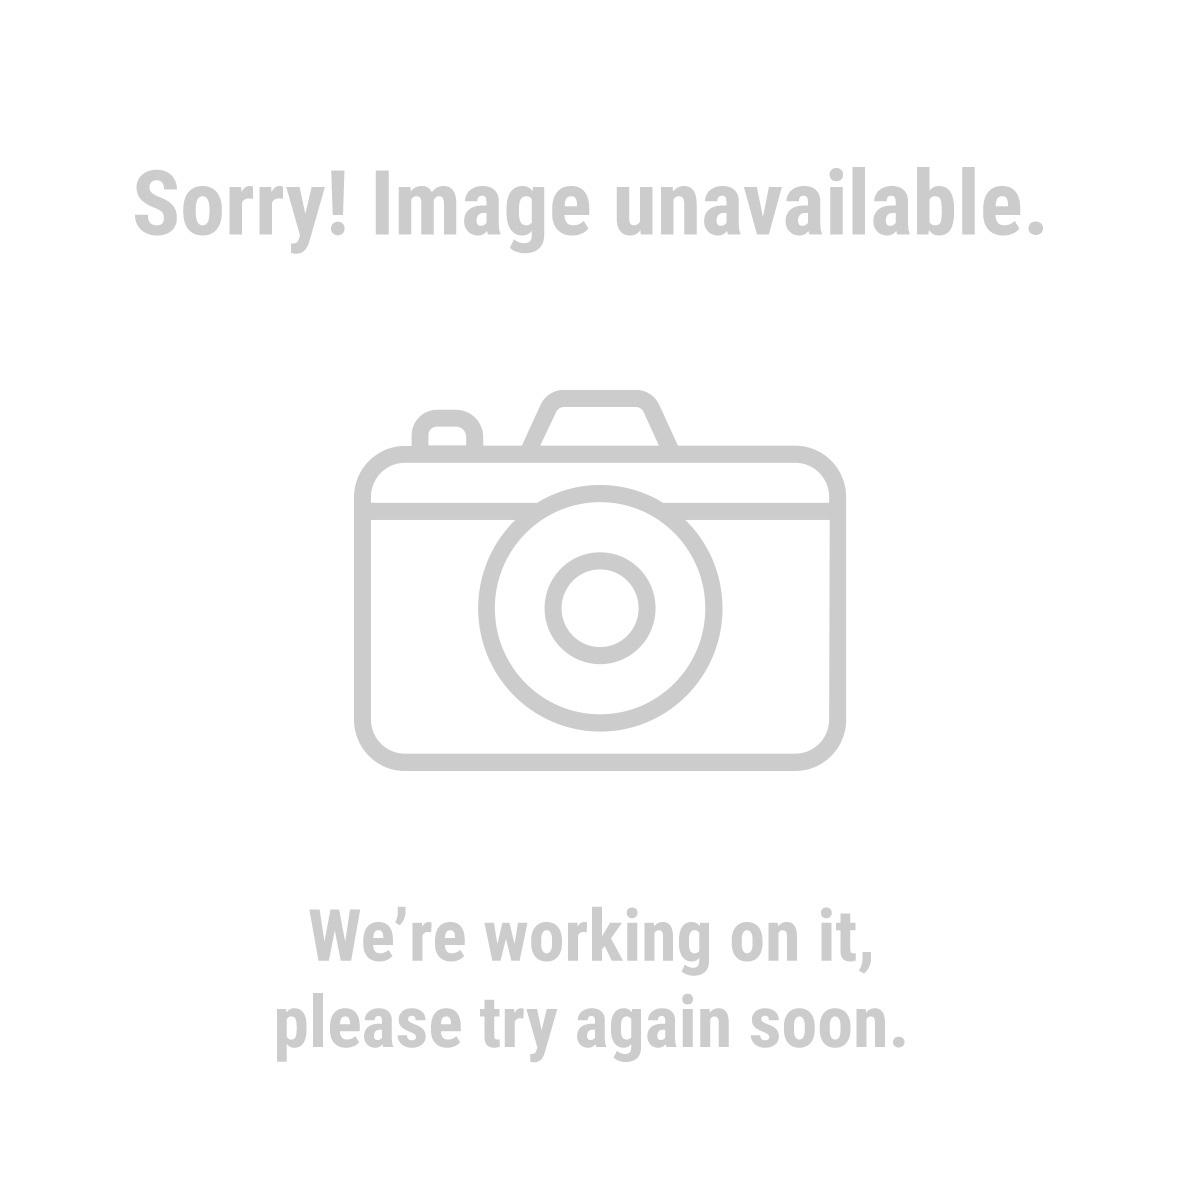 2 Horsepower, 8 gal., 125 PSI Portable Air Compressor